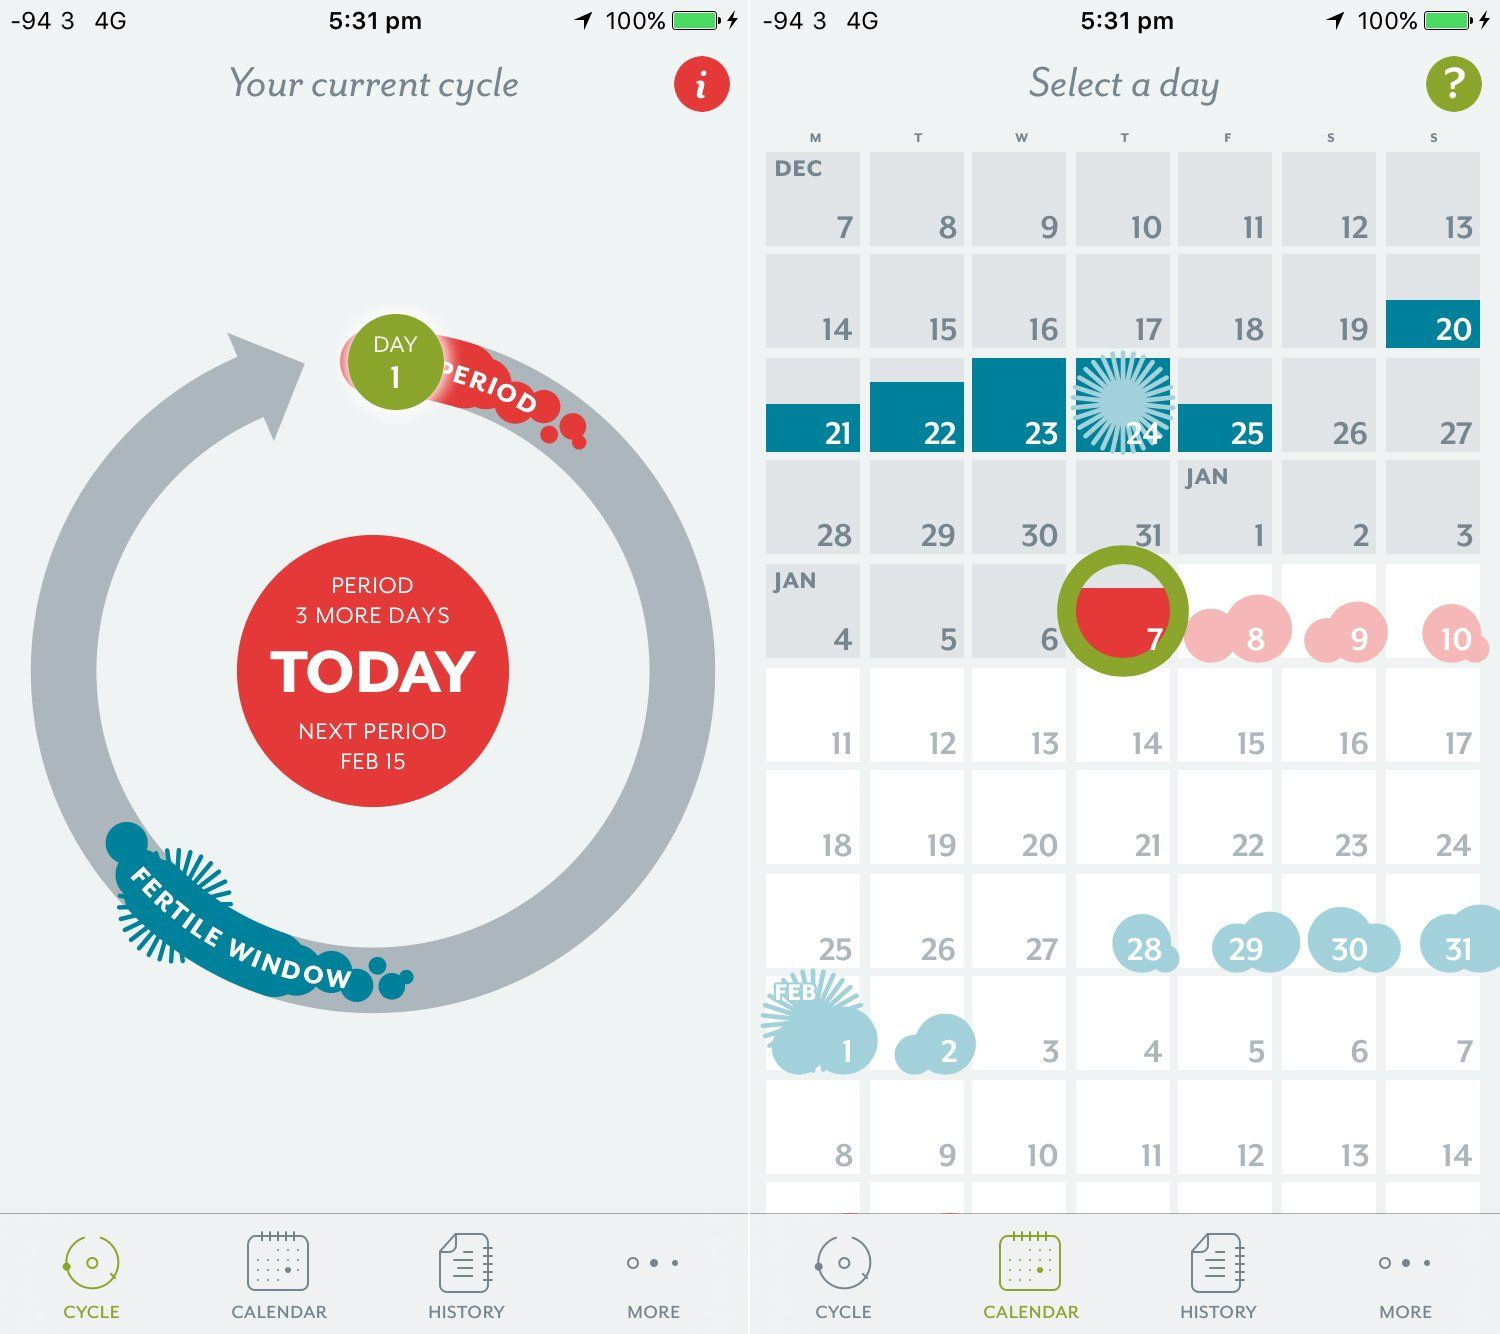 German period tracking app Clue has over 2.5 million